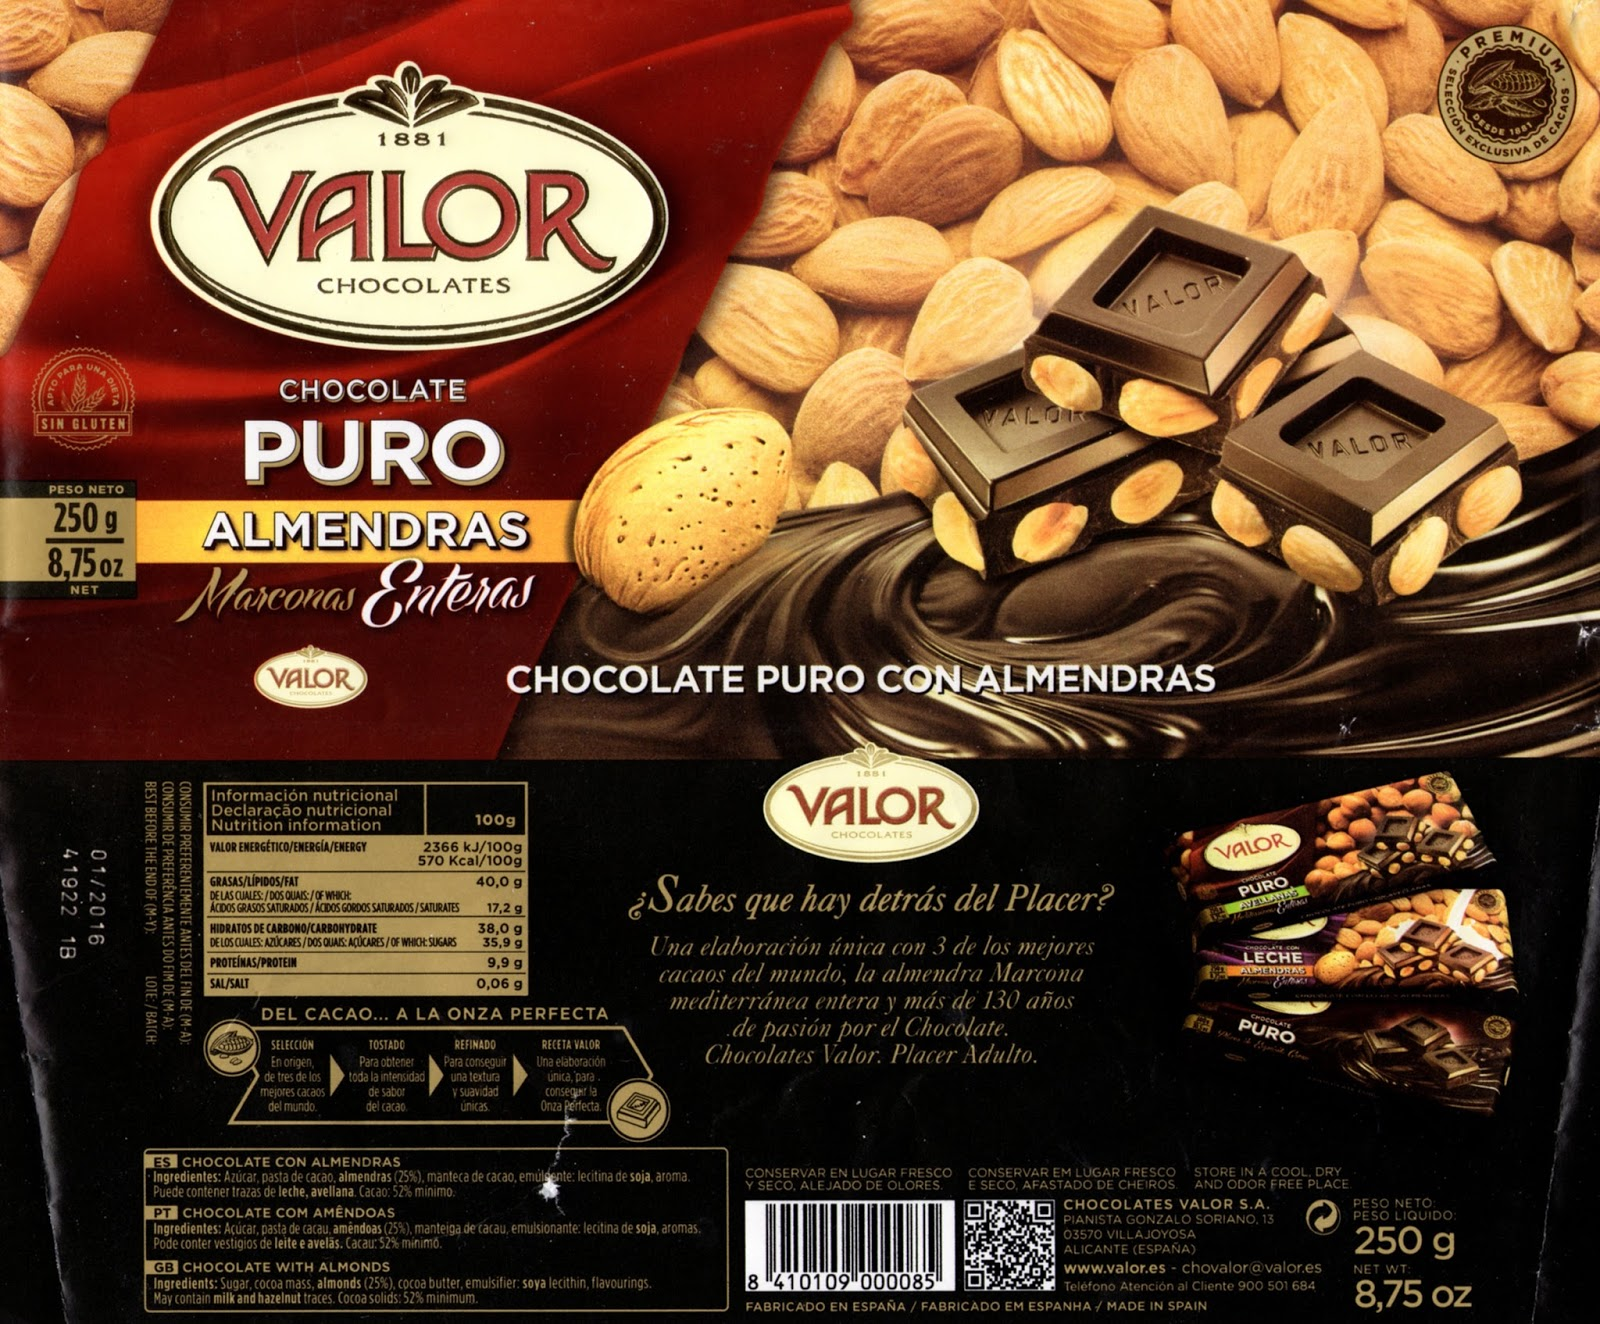 tablette de chocolat noir gourmand valor chocolate puro con almendras